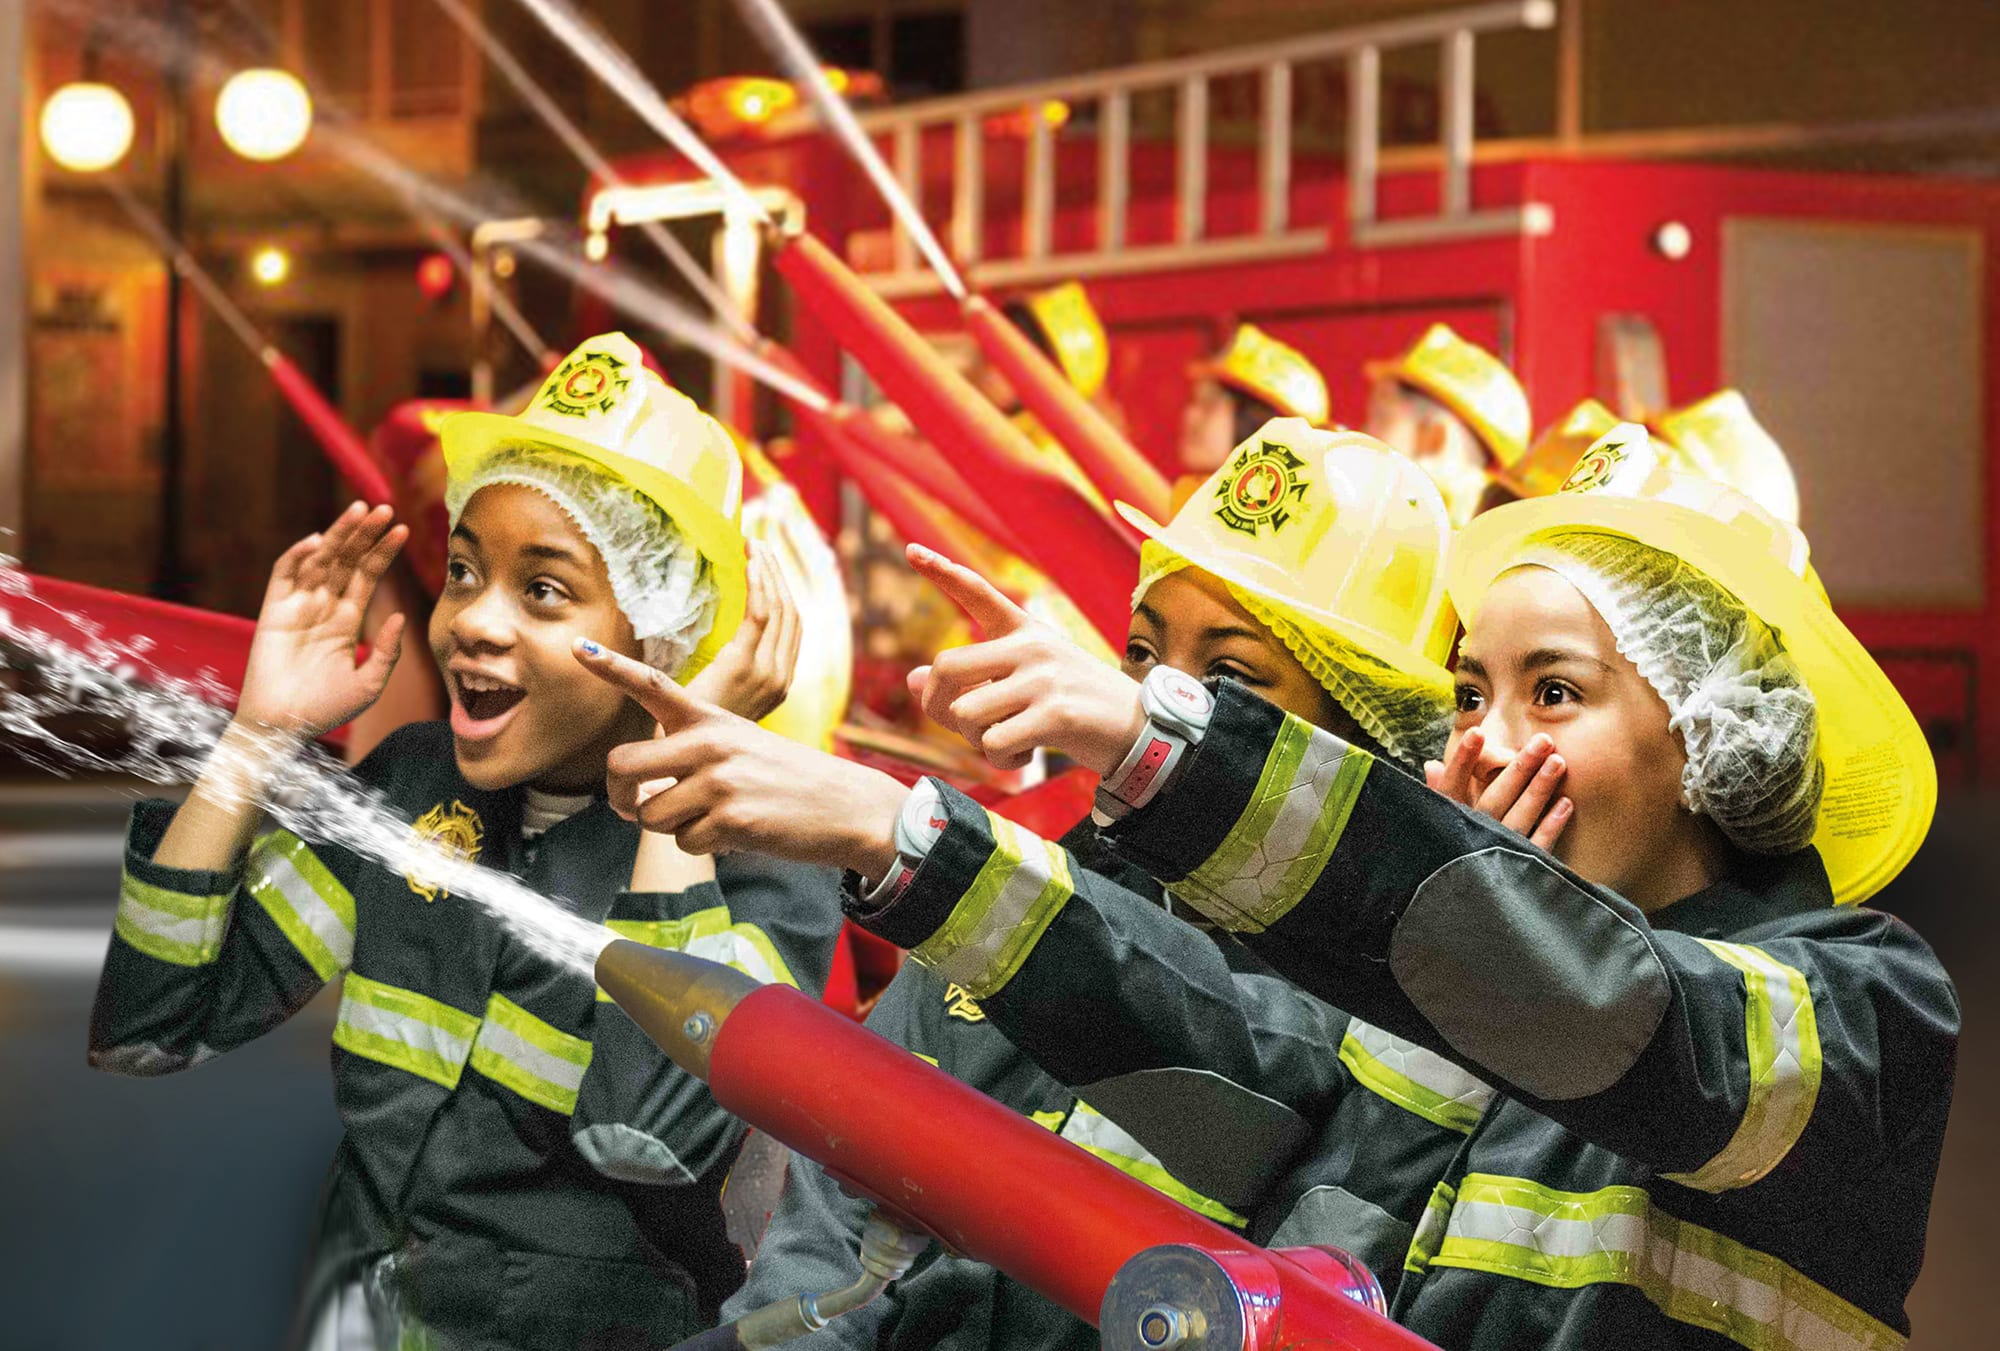 KidZania London fire